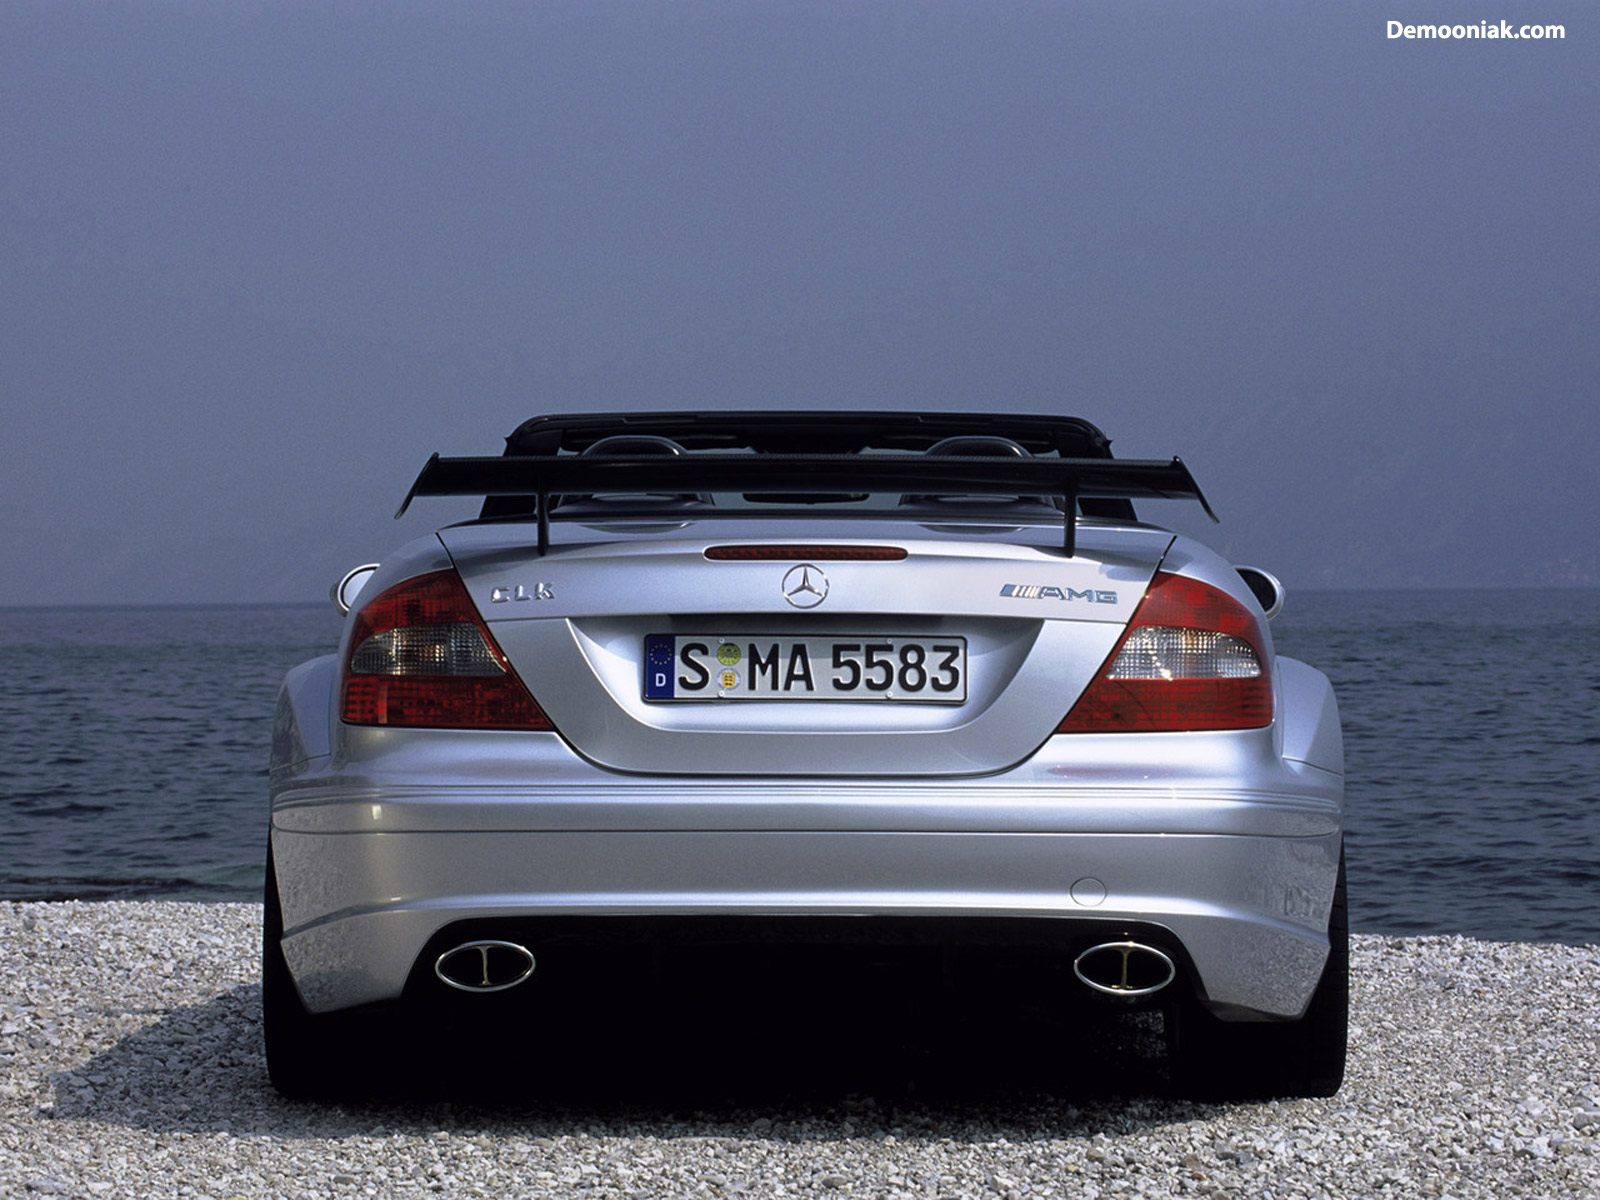 Clk Dtm Dual Exhaust Design Mbworld Org Forums